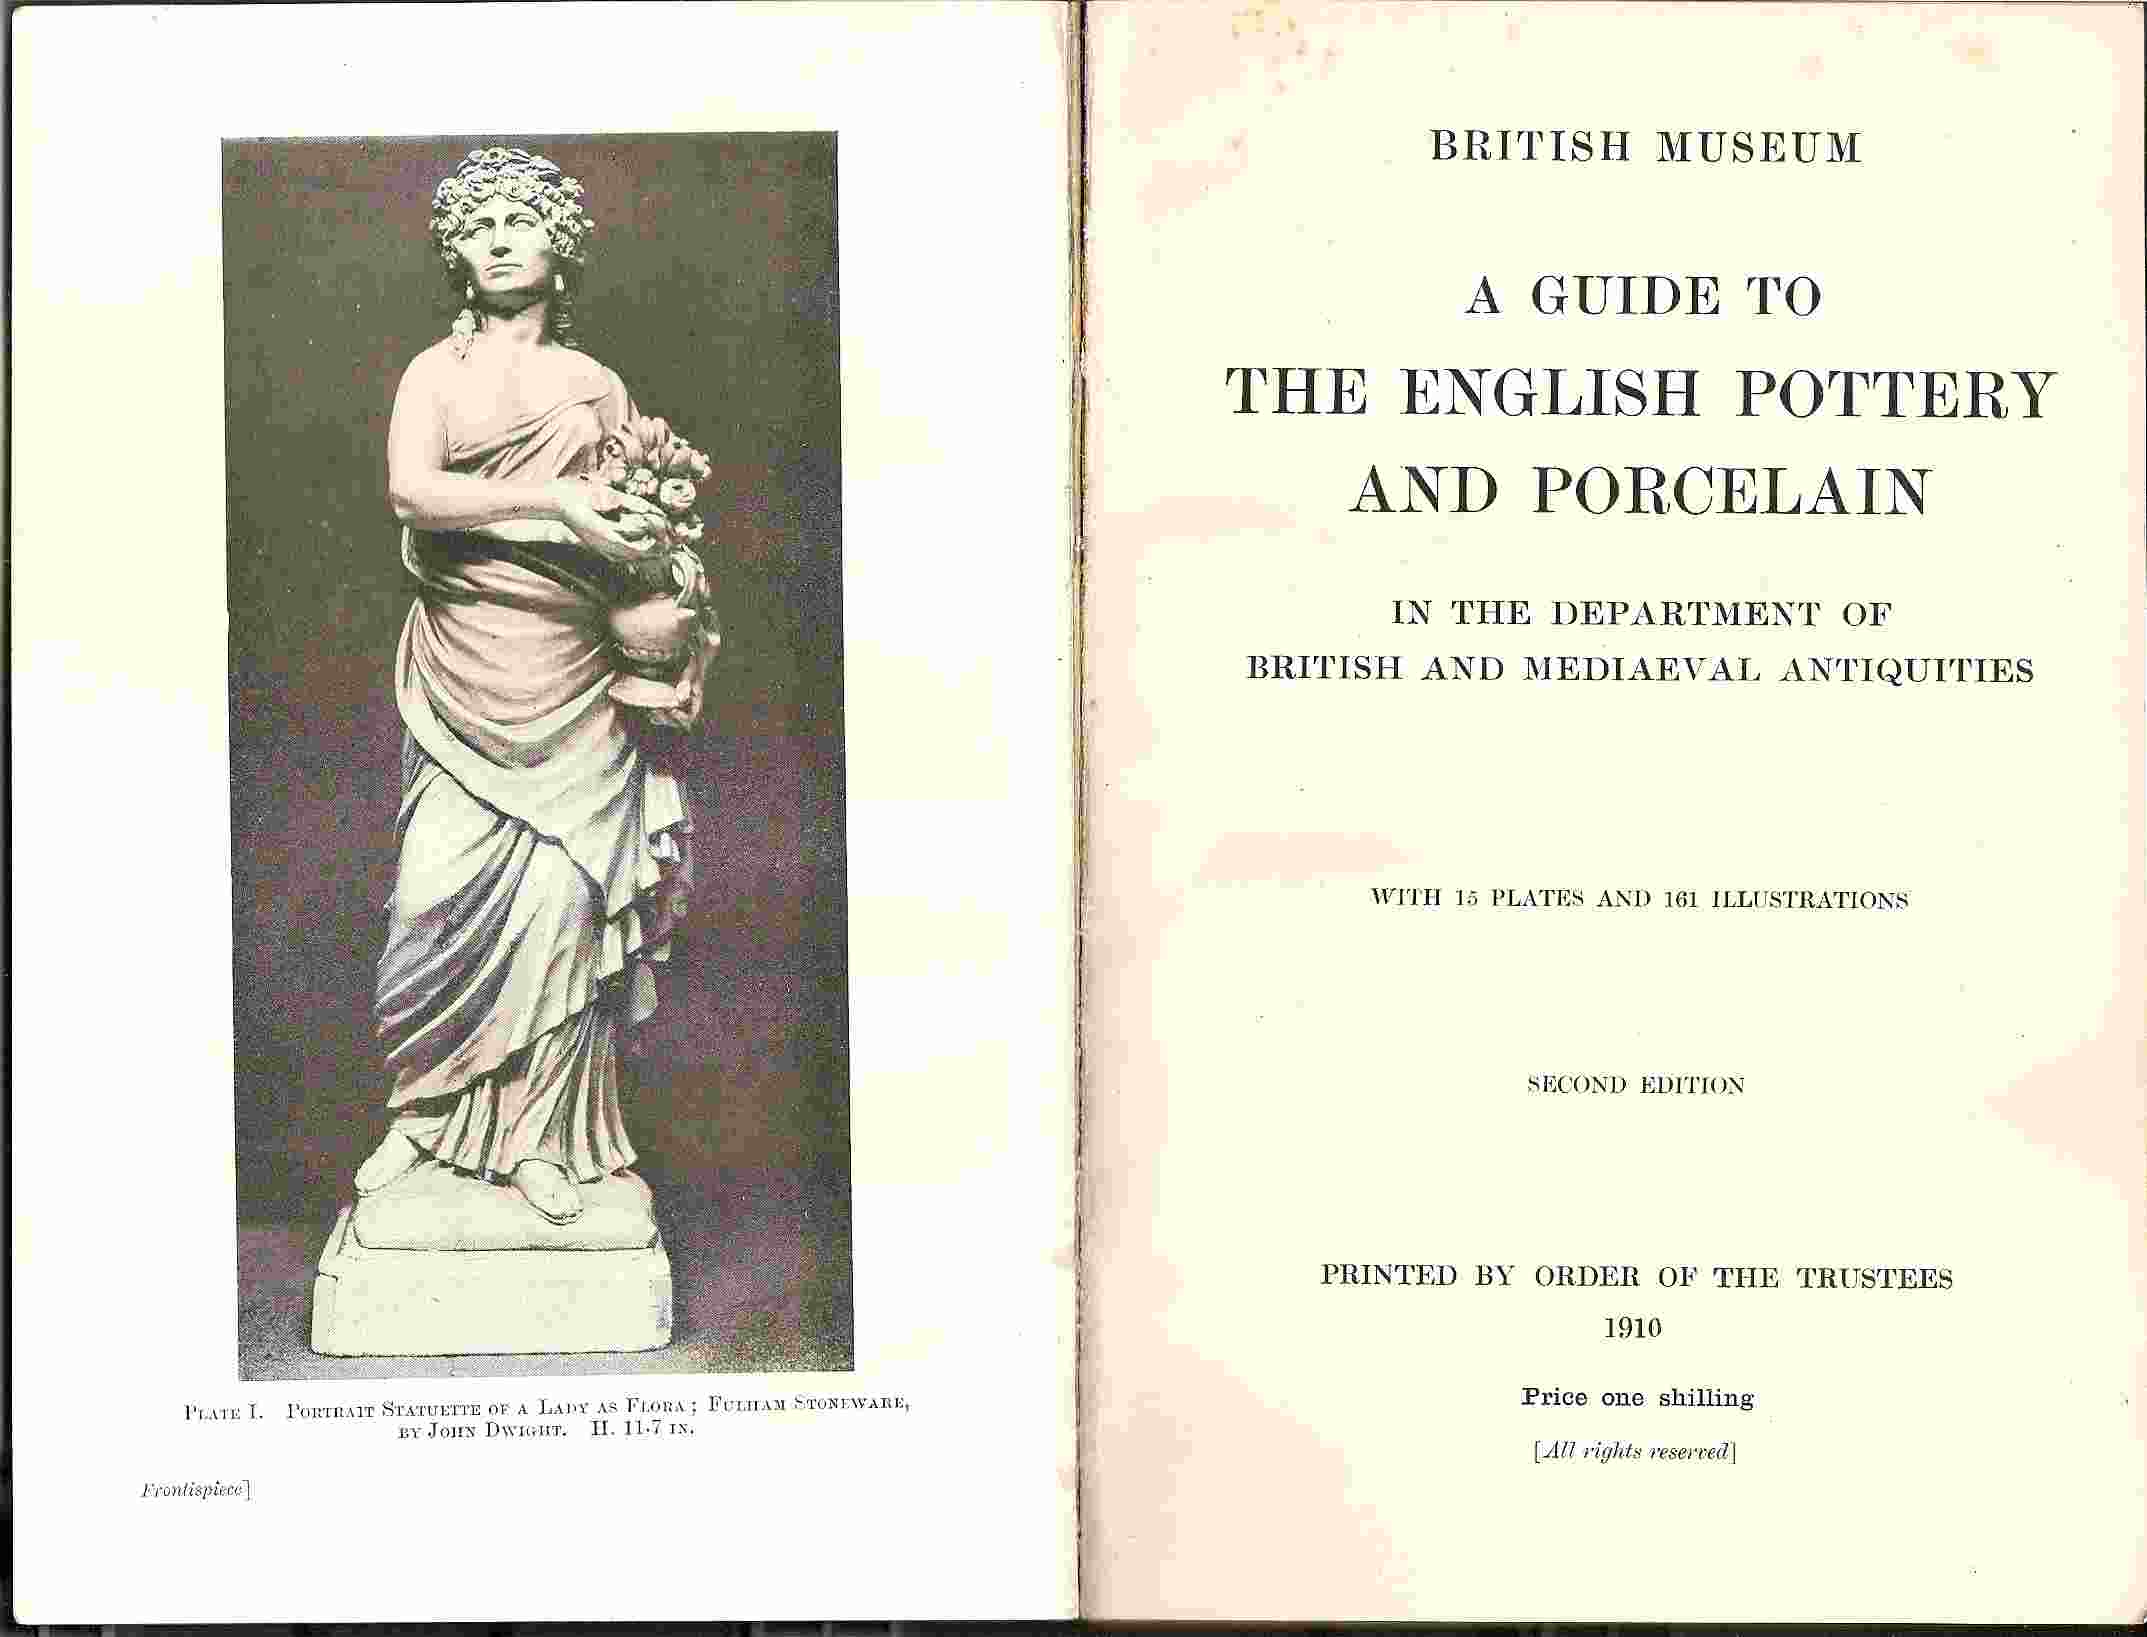 Image for GUIDE TO THE ENGLISH POTTERY & PORCELAIN IN THE DEPARTMENT OF BRITISH & MEDIEAEVAL ANTIQUITIES